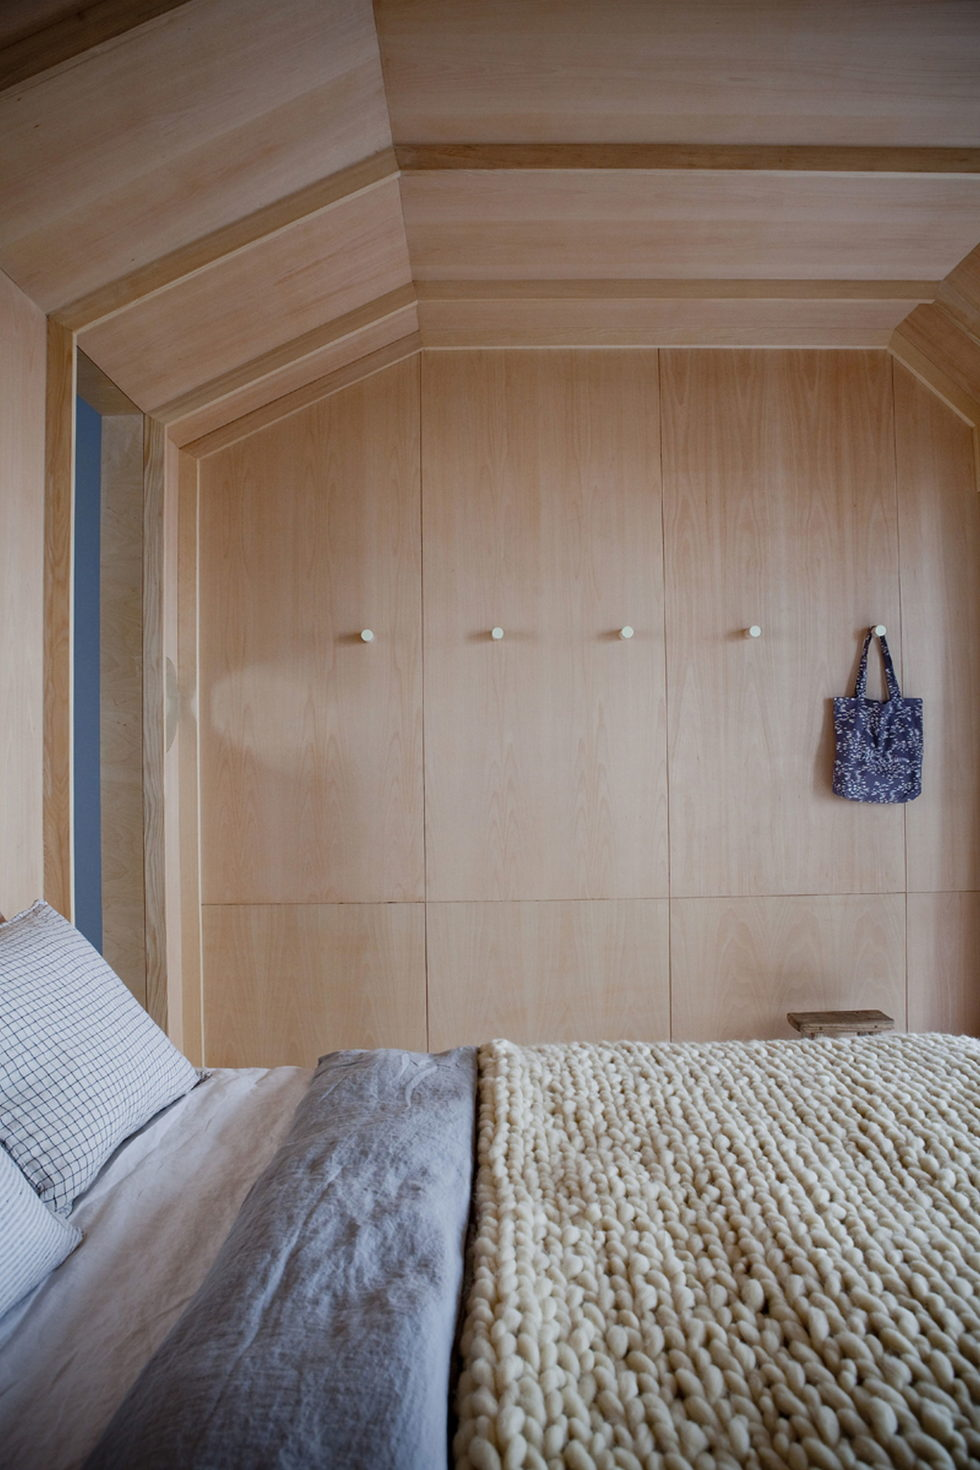 chez-marie-sixtine-the-apartment-for-guests-in-marie-sixtine-store-24